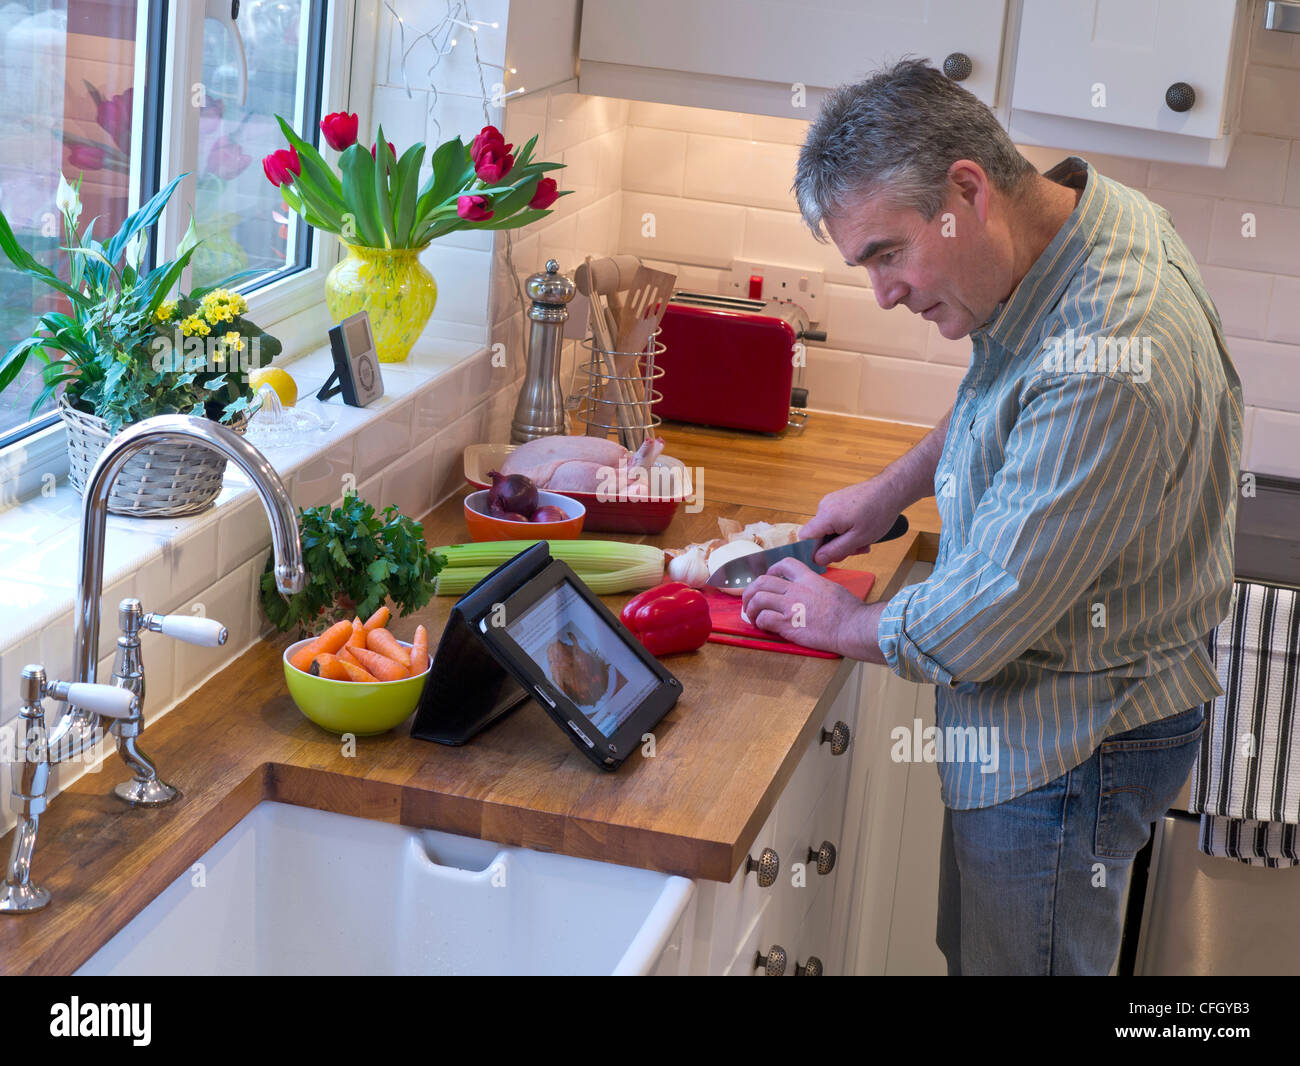 Man preparing meal in contemporary home kitchen using iPad tablet computer to provide recipe and reference guide - Stock Image